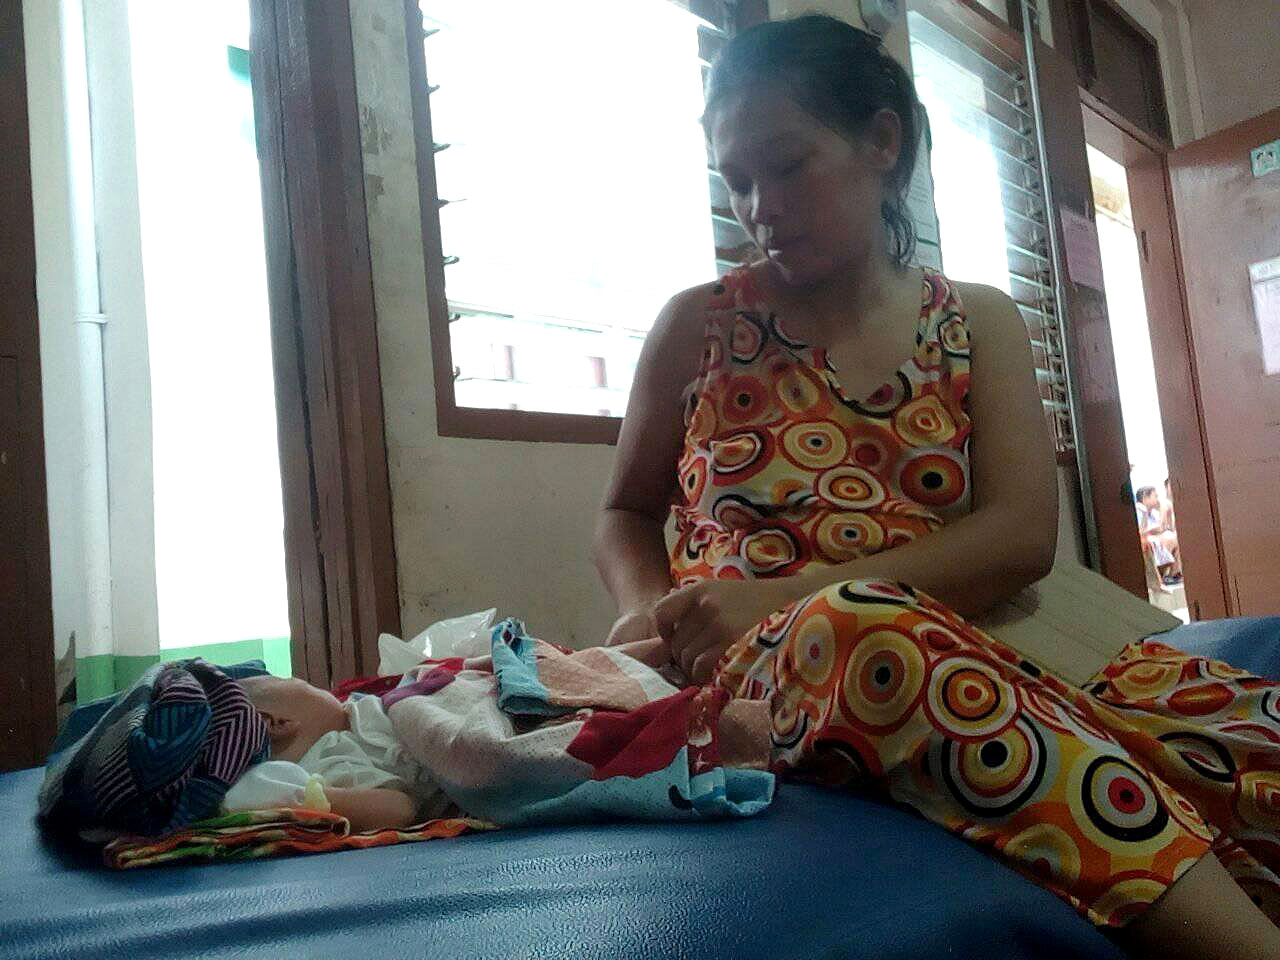 MOTHER FROM MARAWI. On Friday night, May 26, an evacuee from Marawi City gives birth to a baby boy in a public hospital in Iligan City. Photo courtesy of Ashie Matuan Malaco